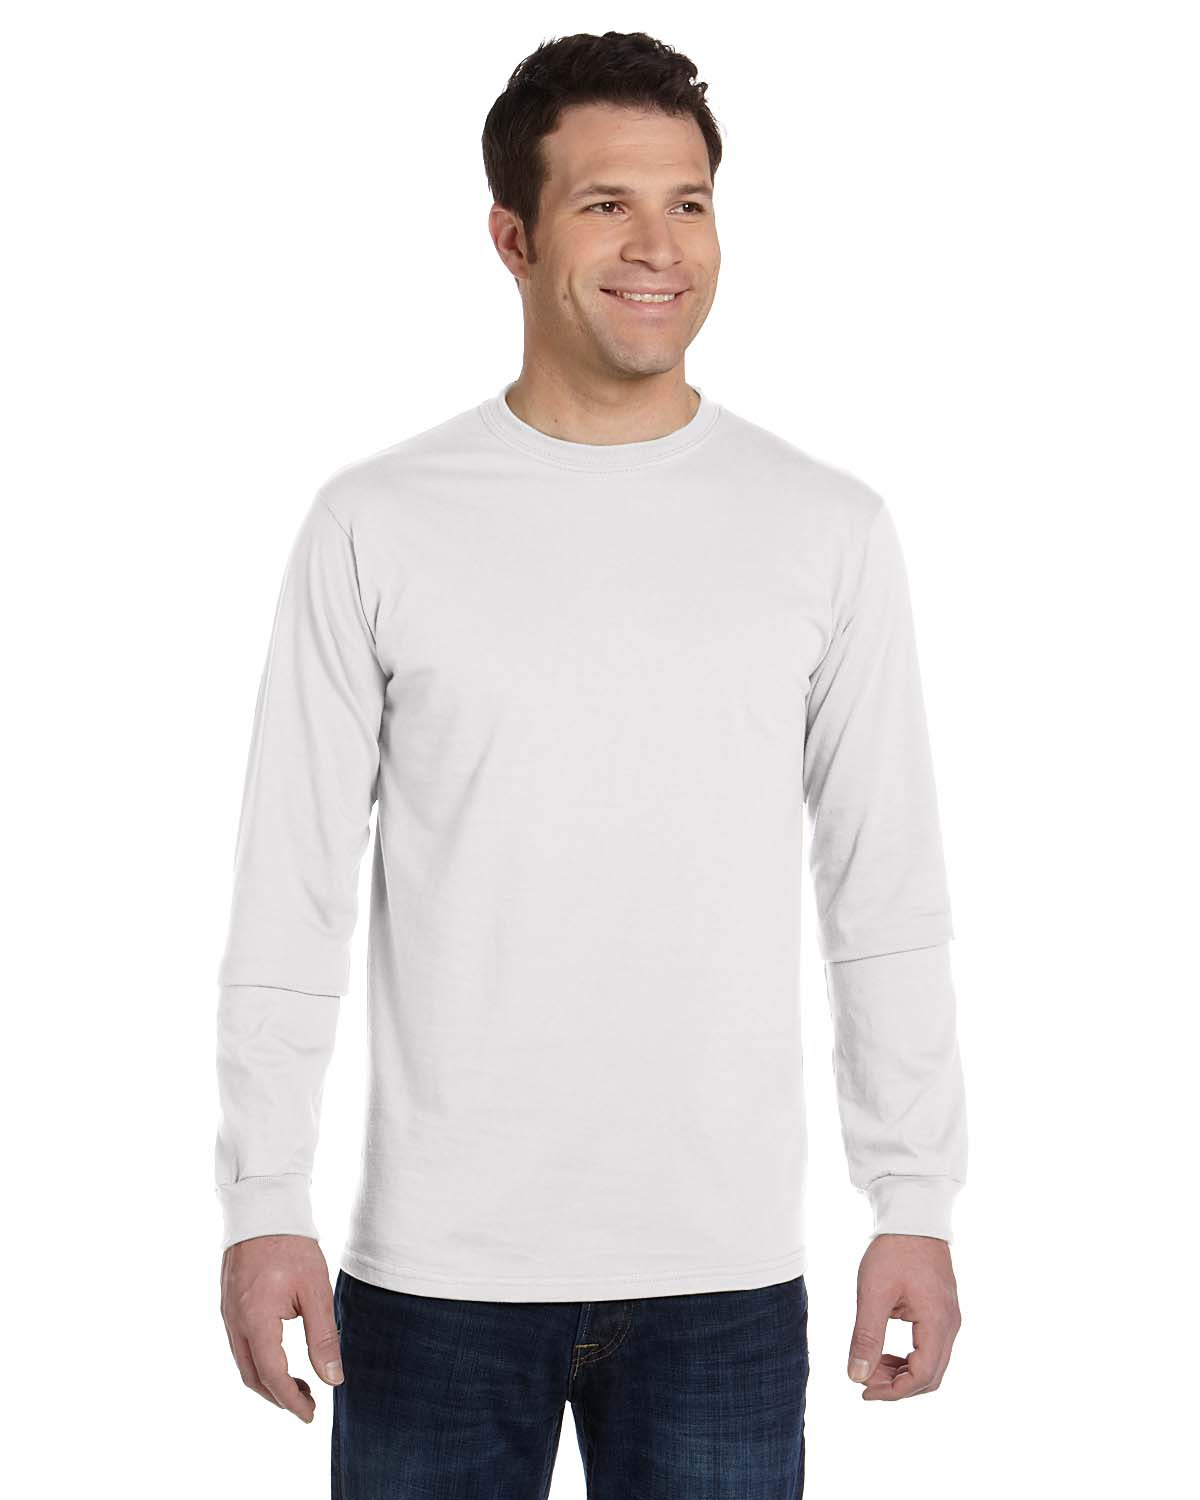 Men S Casual Inspiration 4: Men's Organic Cotton Ring-Spun Long-Sleeve T-Shirt